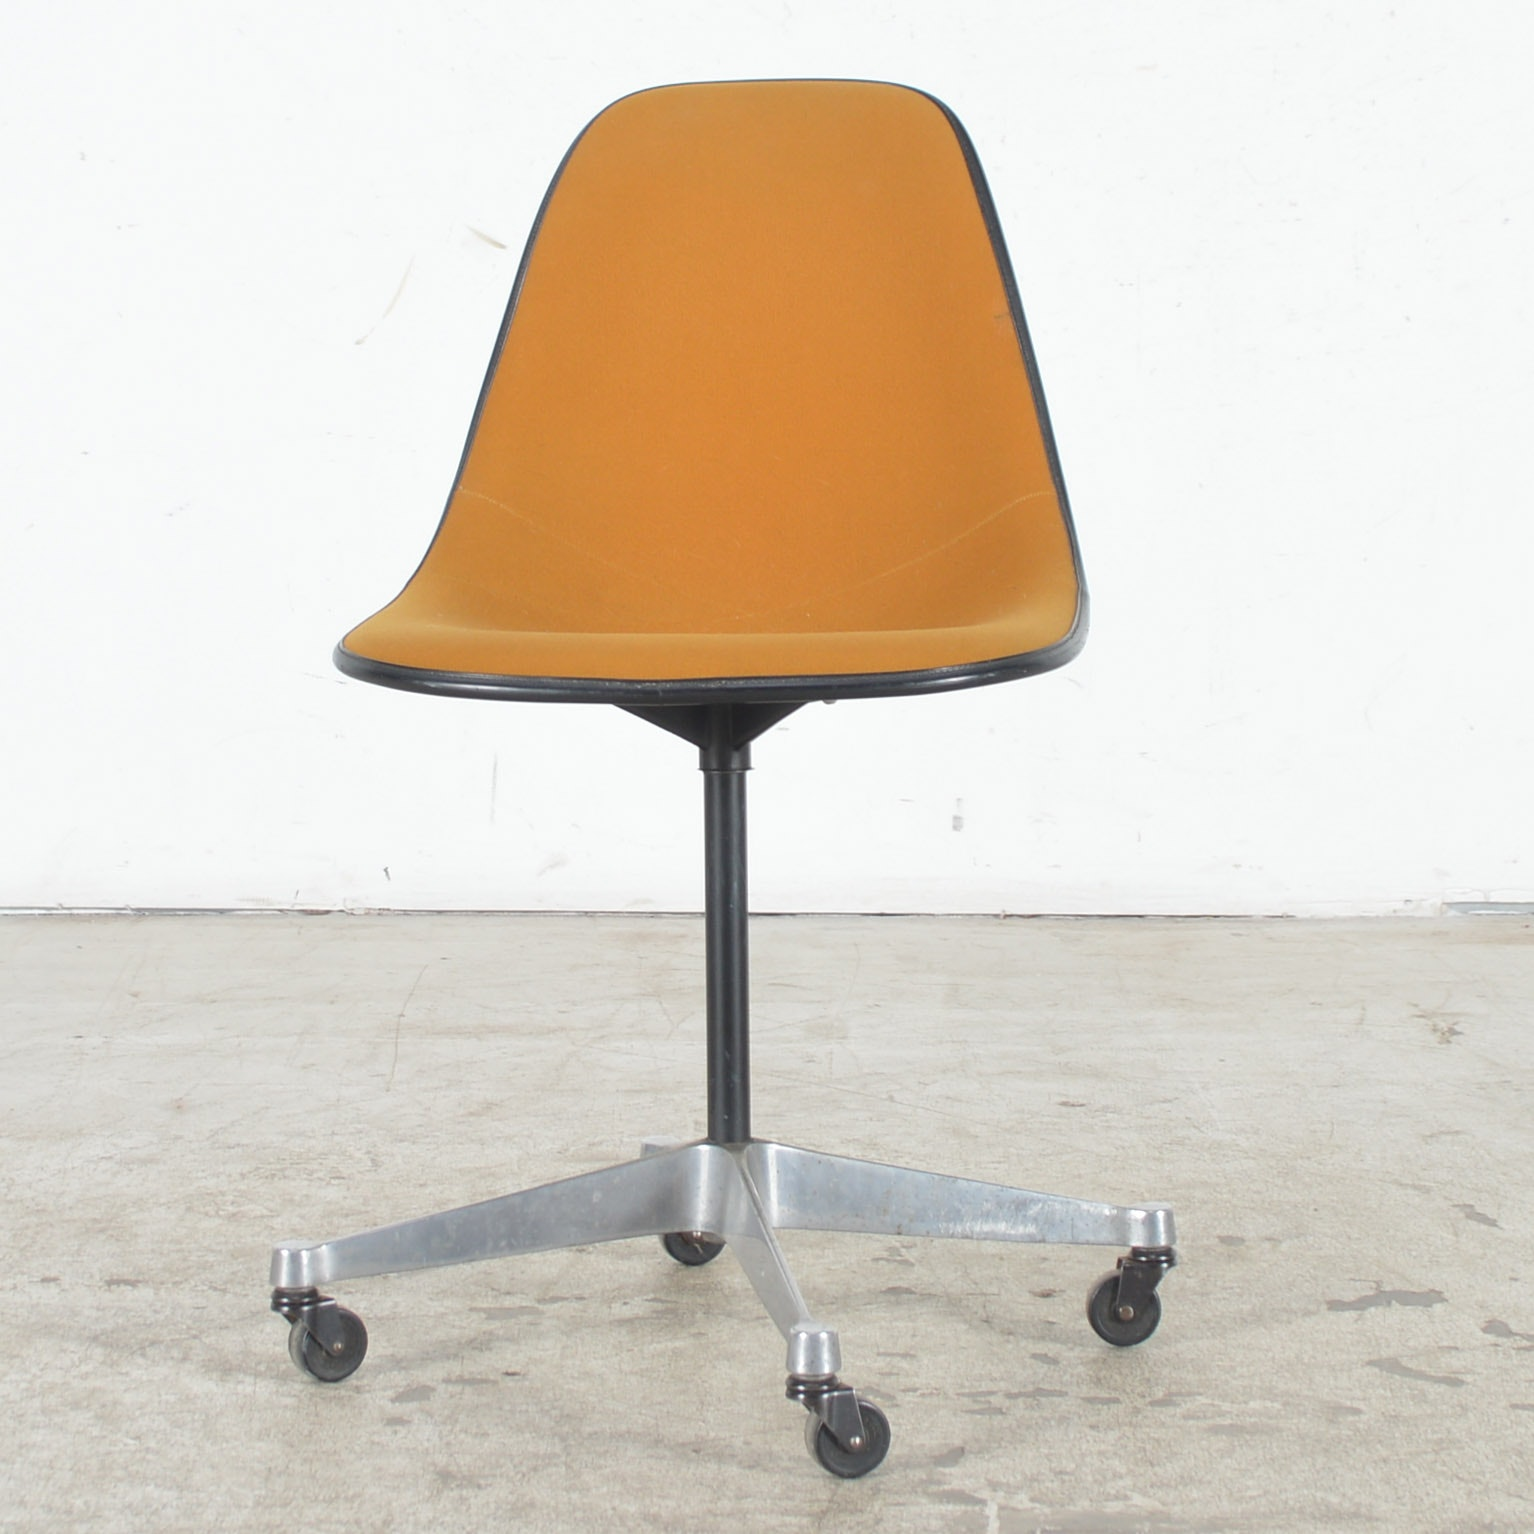 Vintage Shell Chair by Eames for Herman Miller